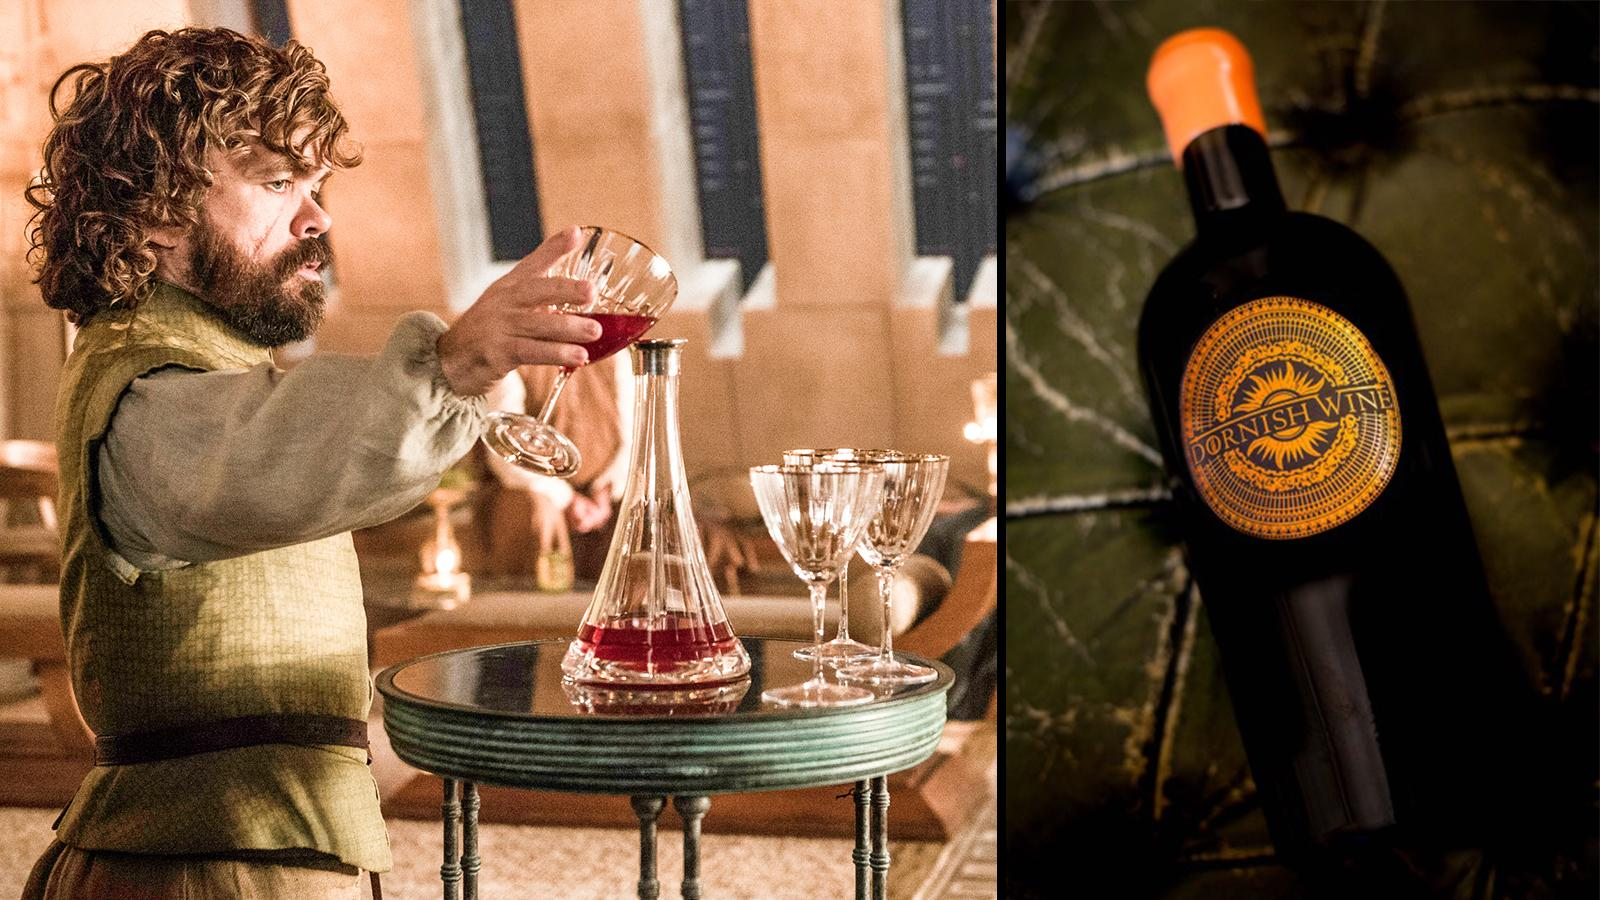 Tyrion Lannister (left) and the St.-Emilion Dornish cuvée